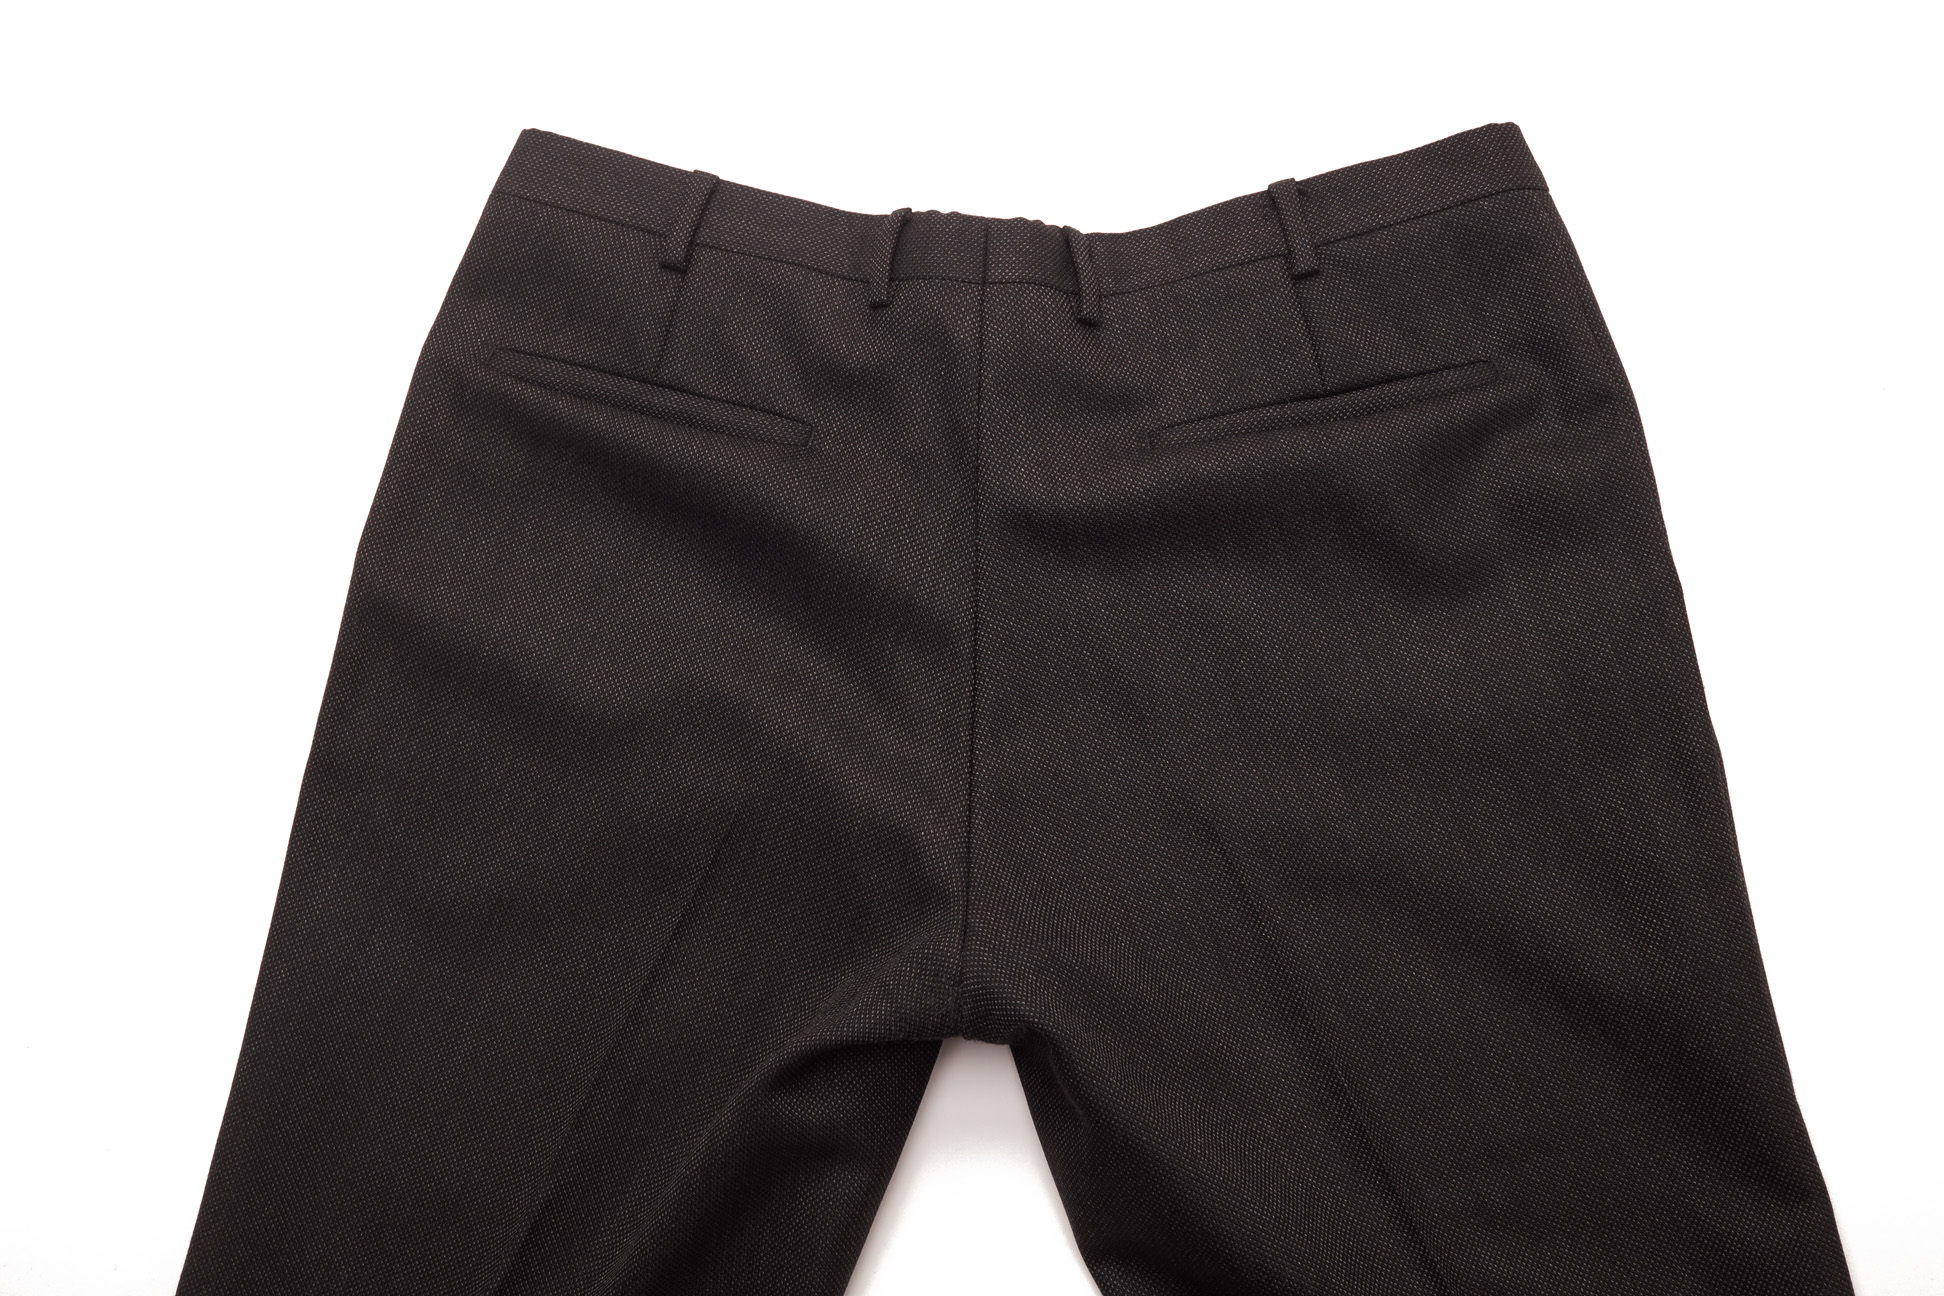 A PAIR OF MULBERRY DARK GREY TROUSERS - Image 2 of 2